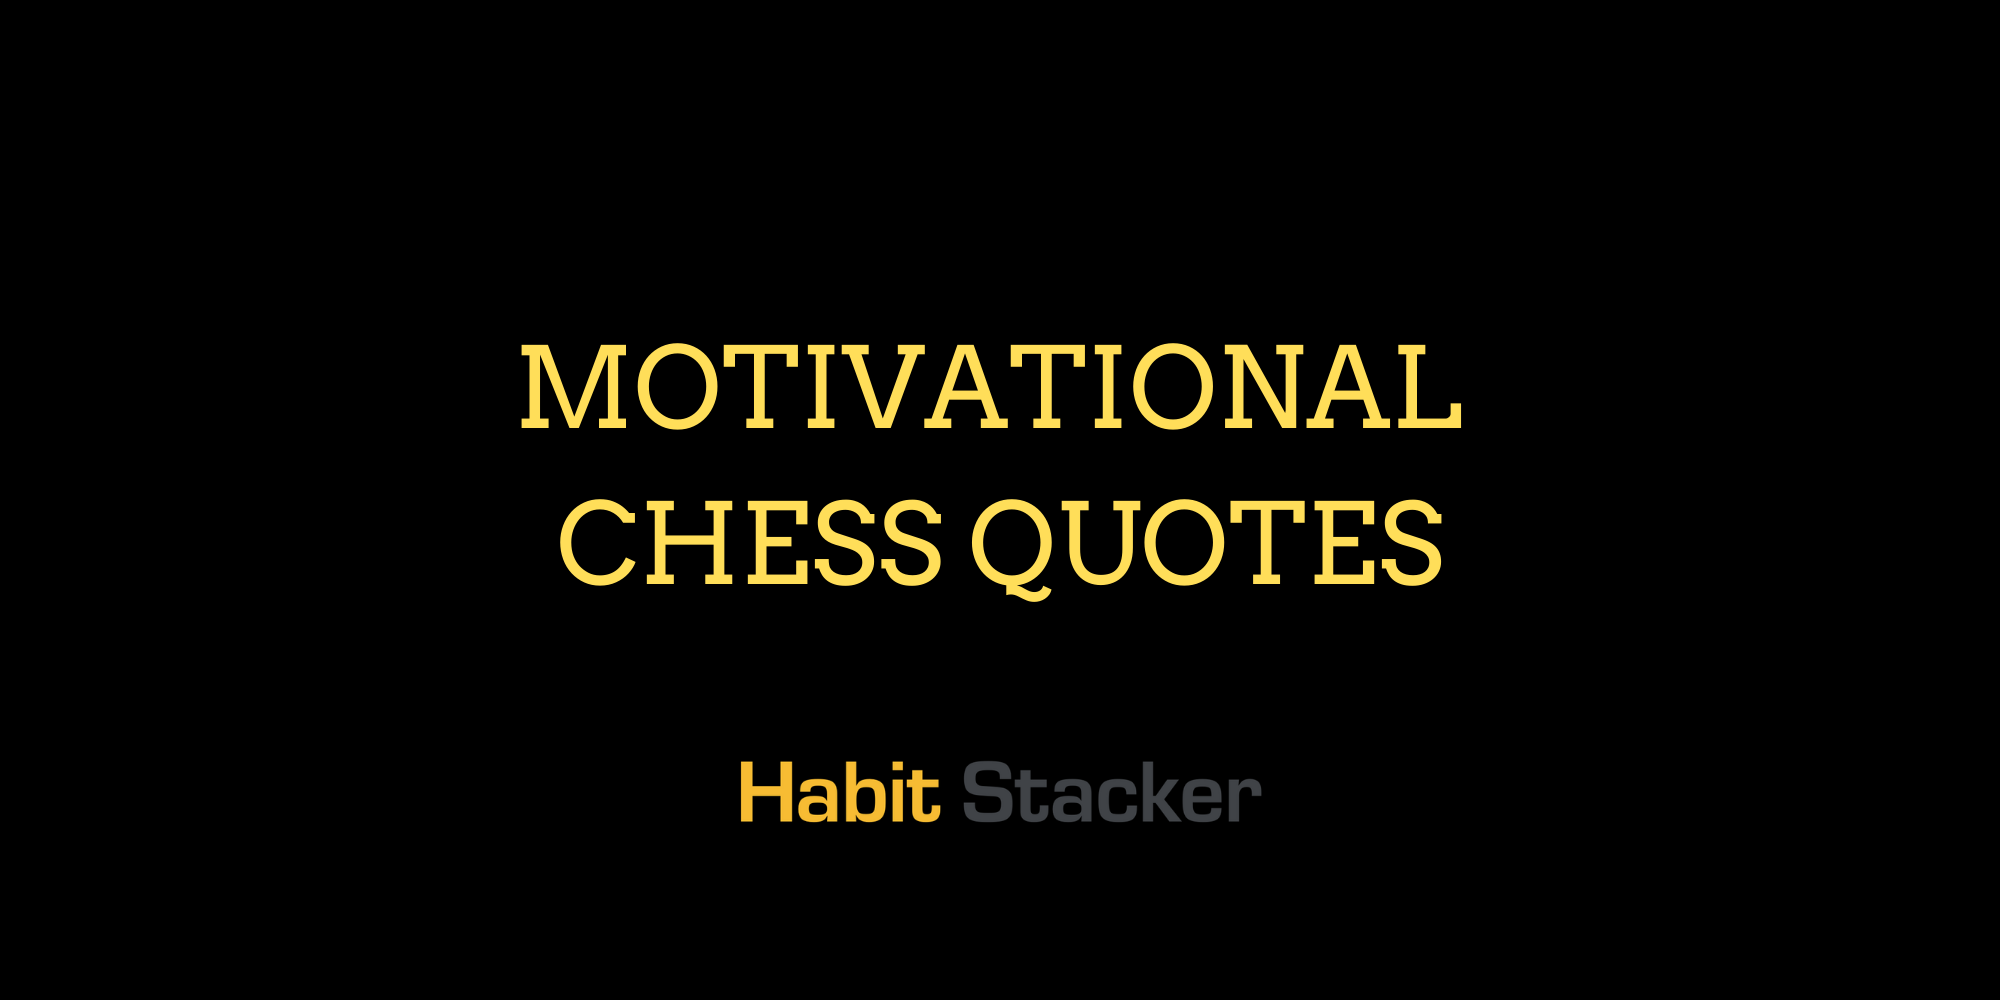 Motivational Chess Quotes